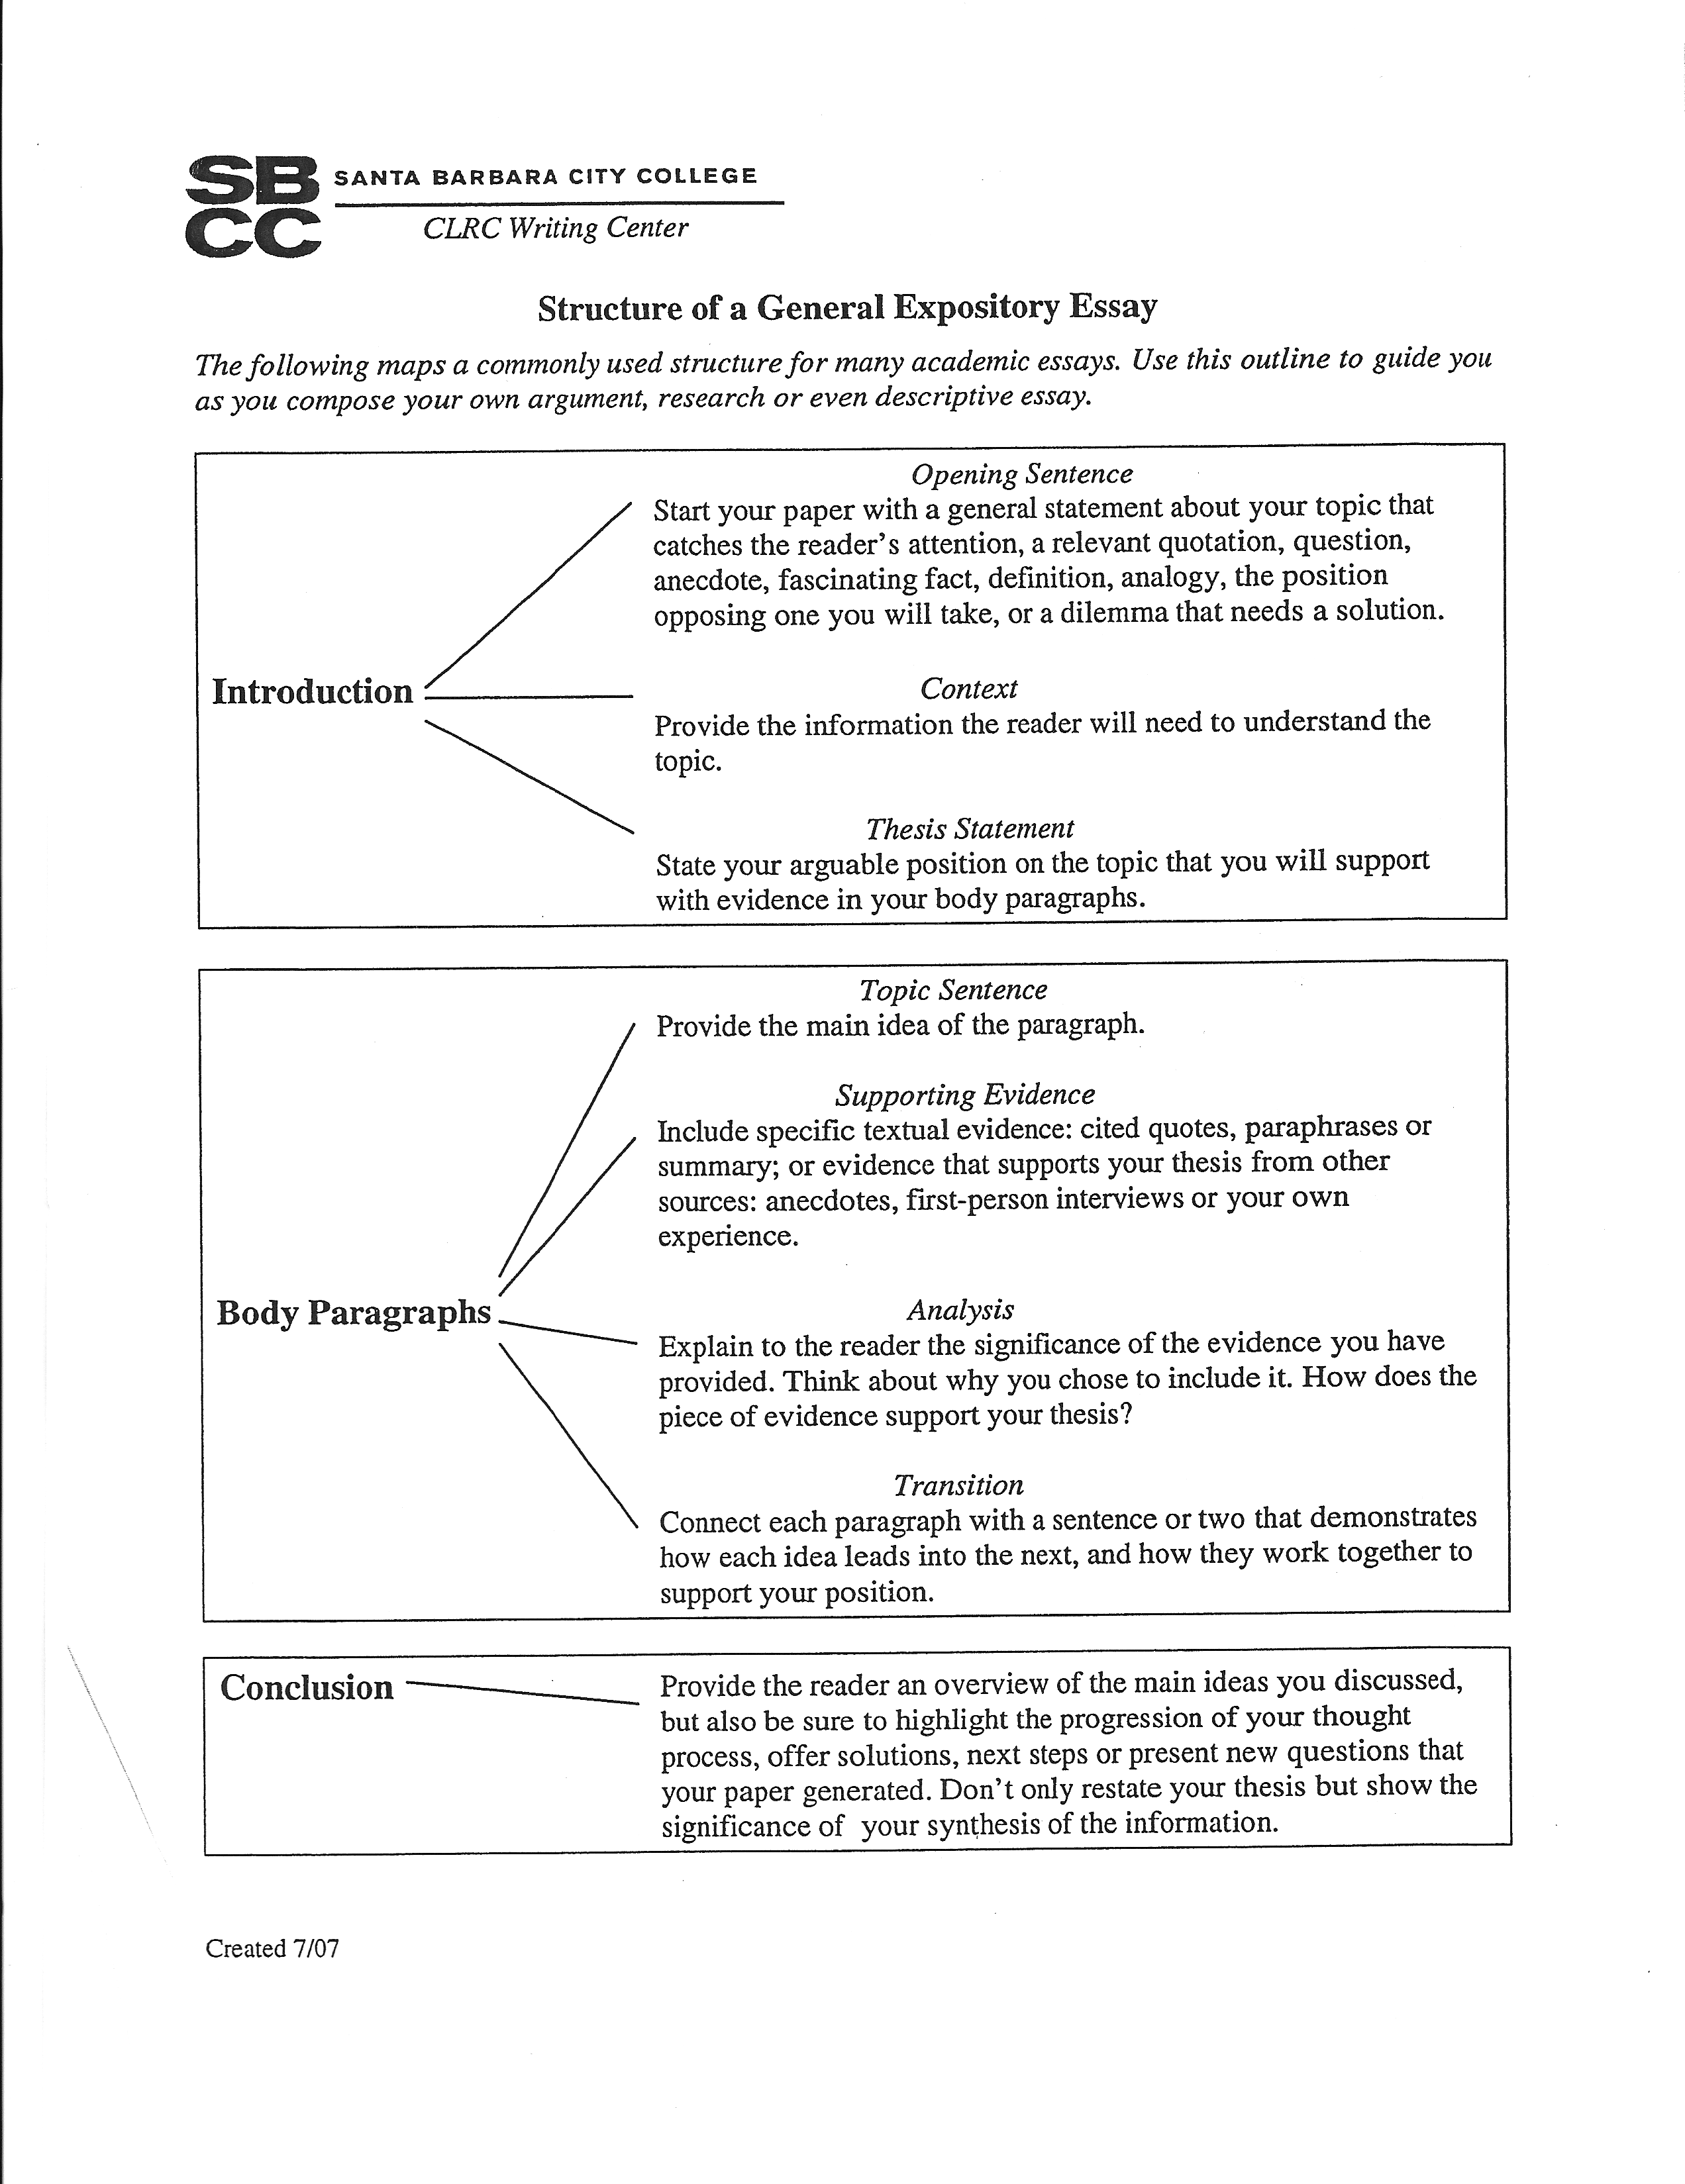 005 Essay Example An Outline For Informative Should Essays On Malaria To What Extent Structure Ielts Writing Thesis Exa Examples Remarkable After Creating A Student Brainly The Include Quizlet Full